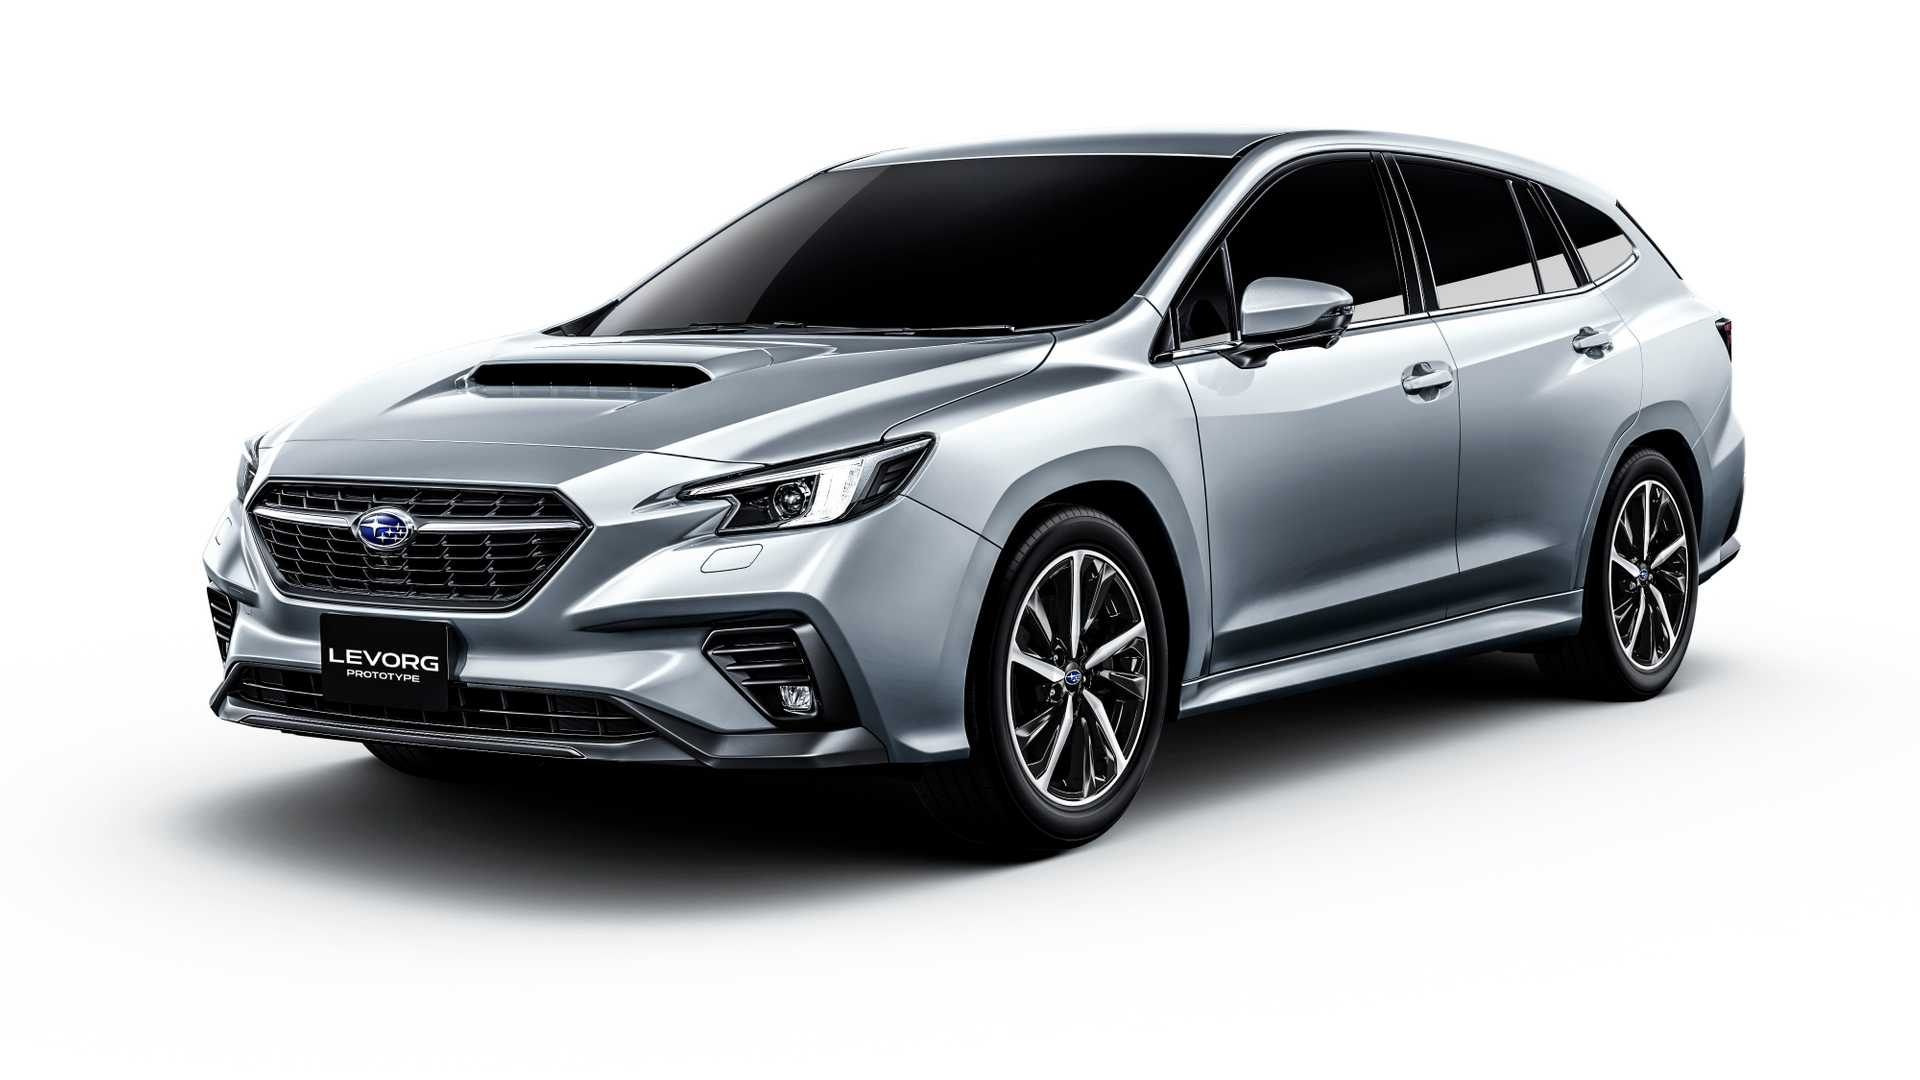 2021-subaru-levorg-introduced-with-new-18-liter-turbo-boxer-engine_1